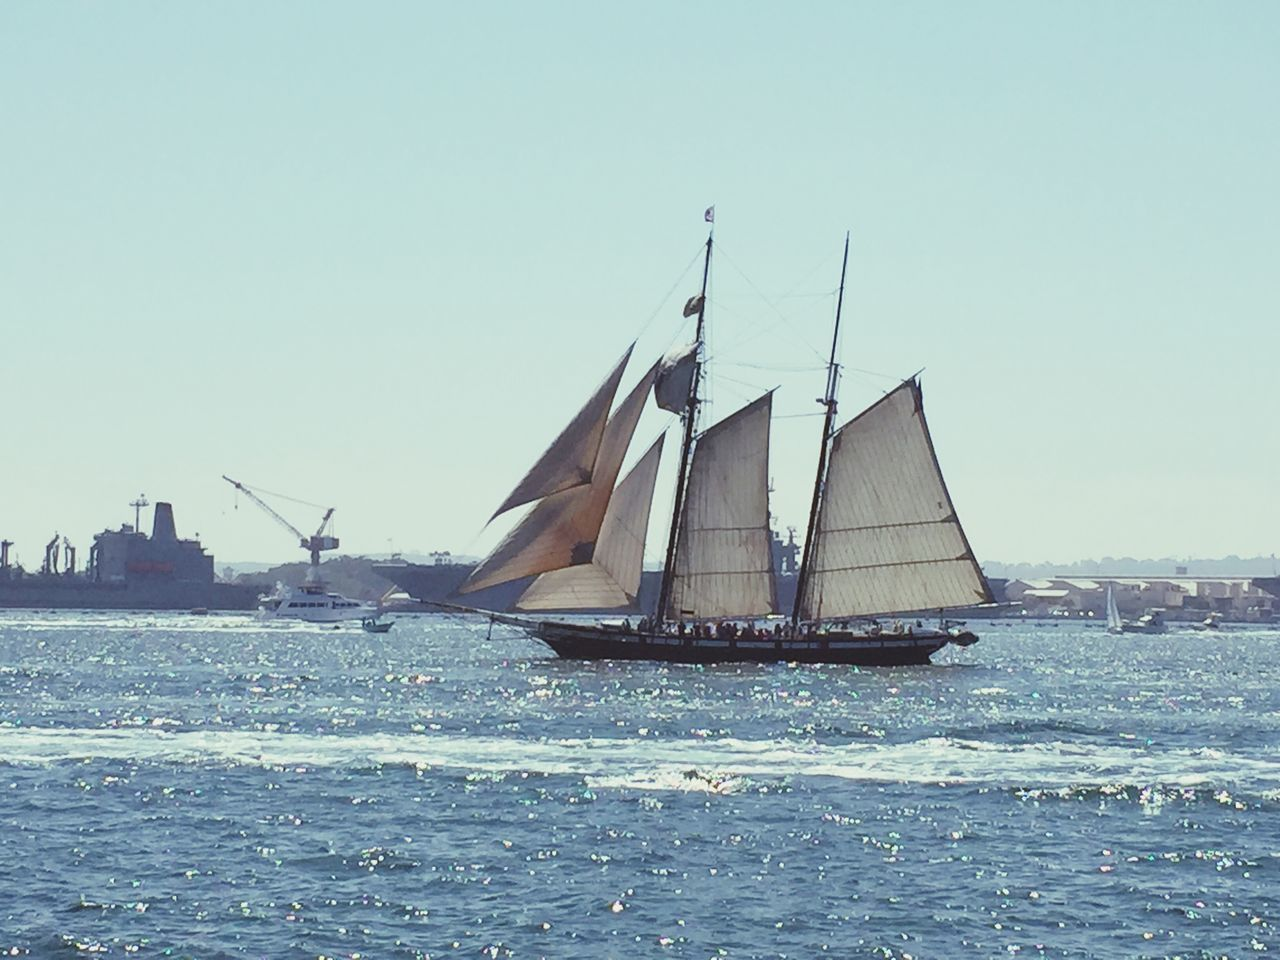 Ship in Sandiego Sandiego Pirate Pirateship  Pirates Boats Boat Ship Beach Coast Coronado